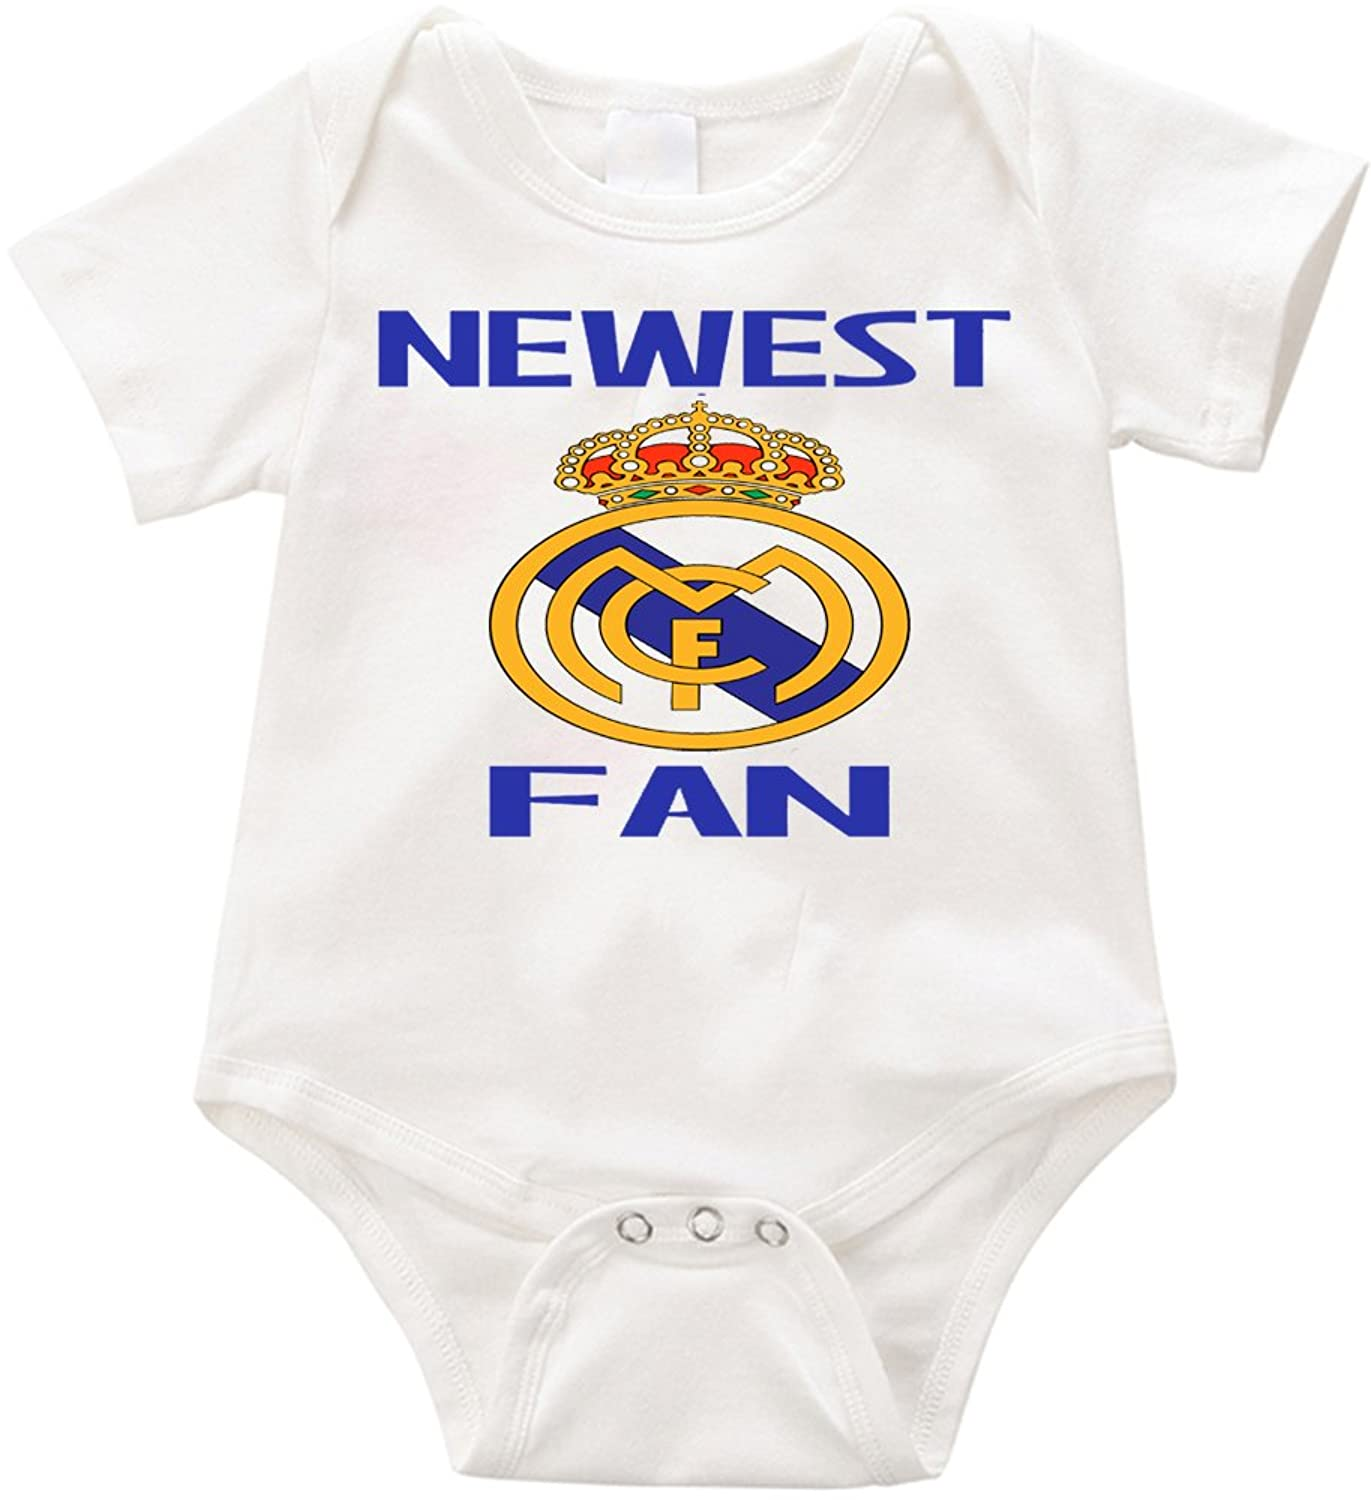 64657952c Official LPM Newest Real Madrid fan Unisex Romper Creeper onesie ...